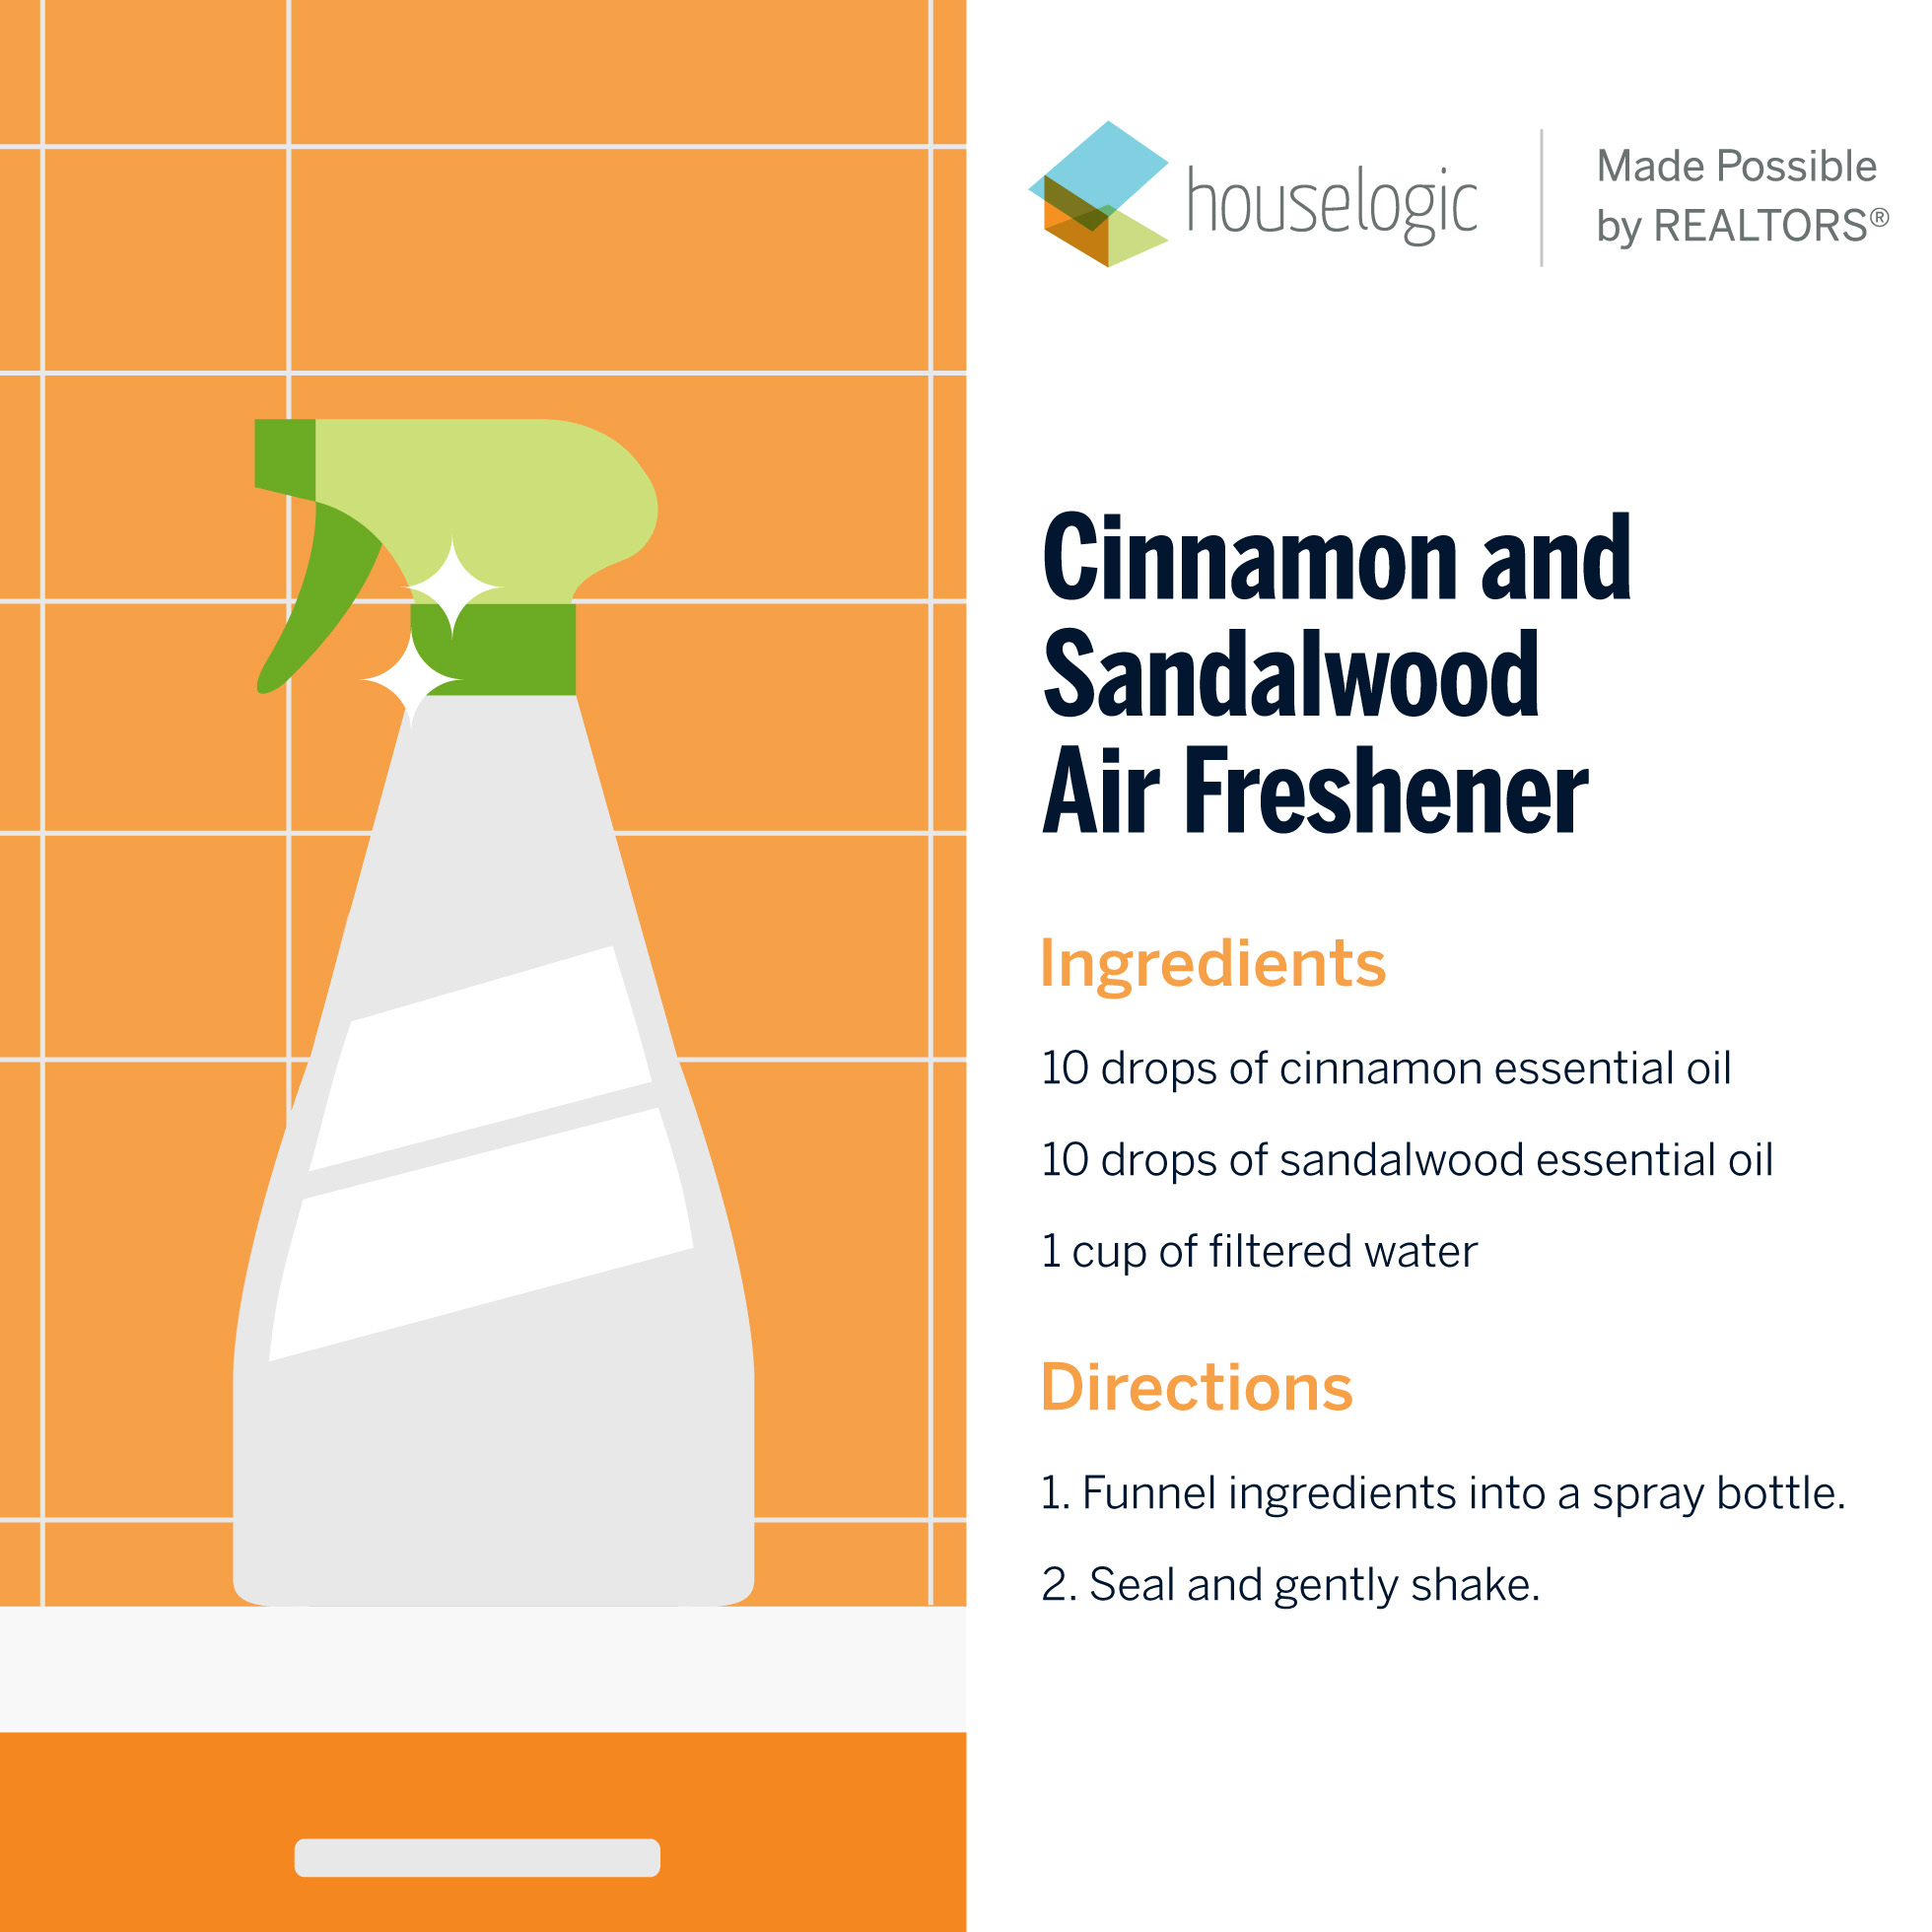 Recipe for homemade cinnamon and sandalwood air freshener